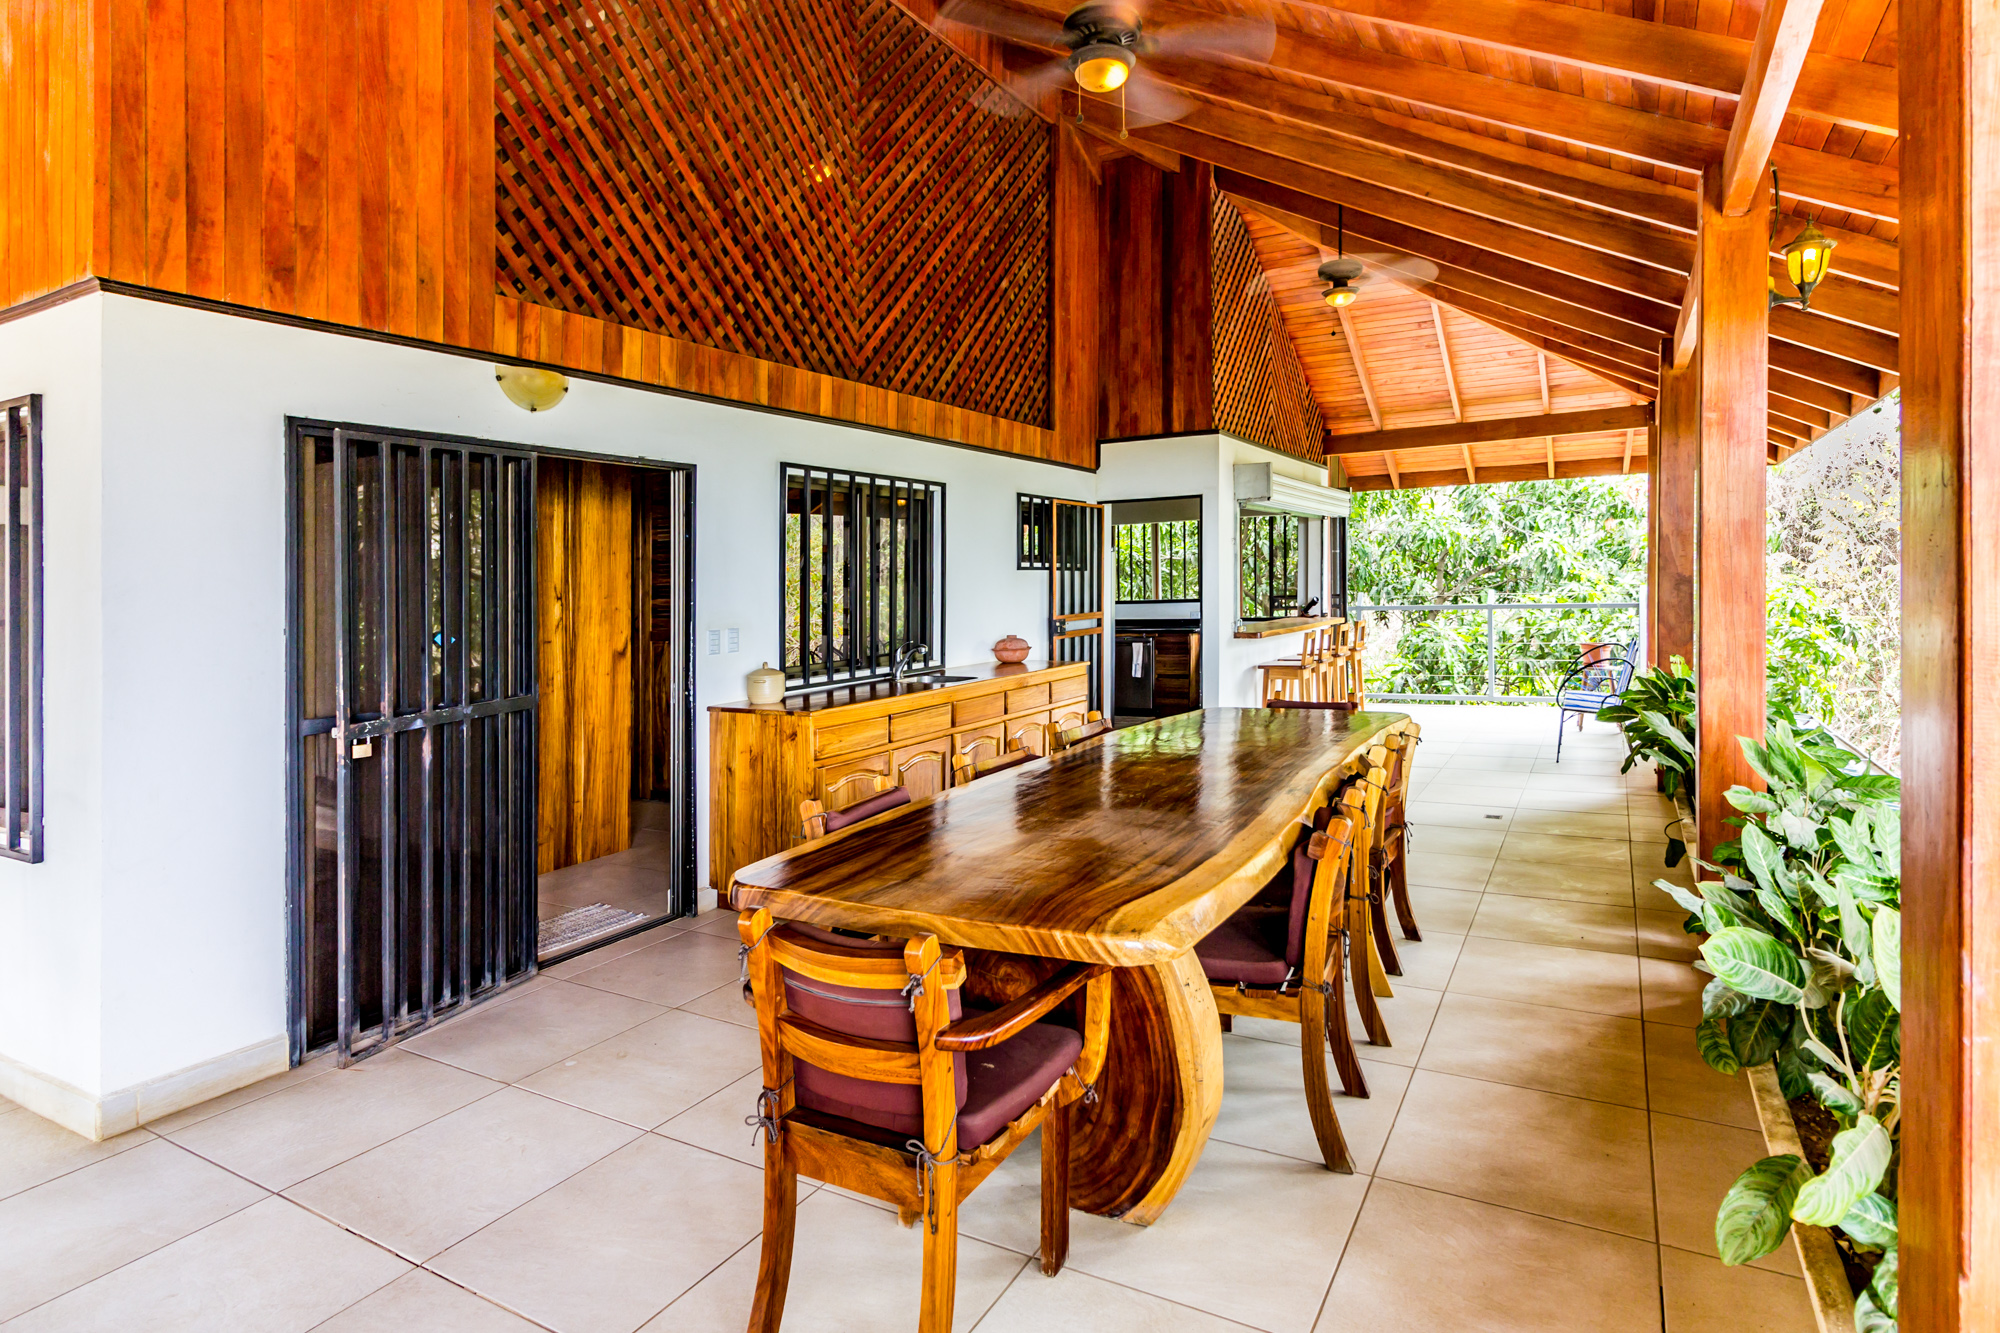 2 Bedroom Upstairs Apartment Ocean View Private Location Large Outdoor Lounge Area Fully Equipped Kitchen Close to Amenities Sleeps 3 WIFI  CLICK FOR MORE DETAILS